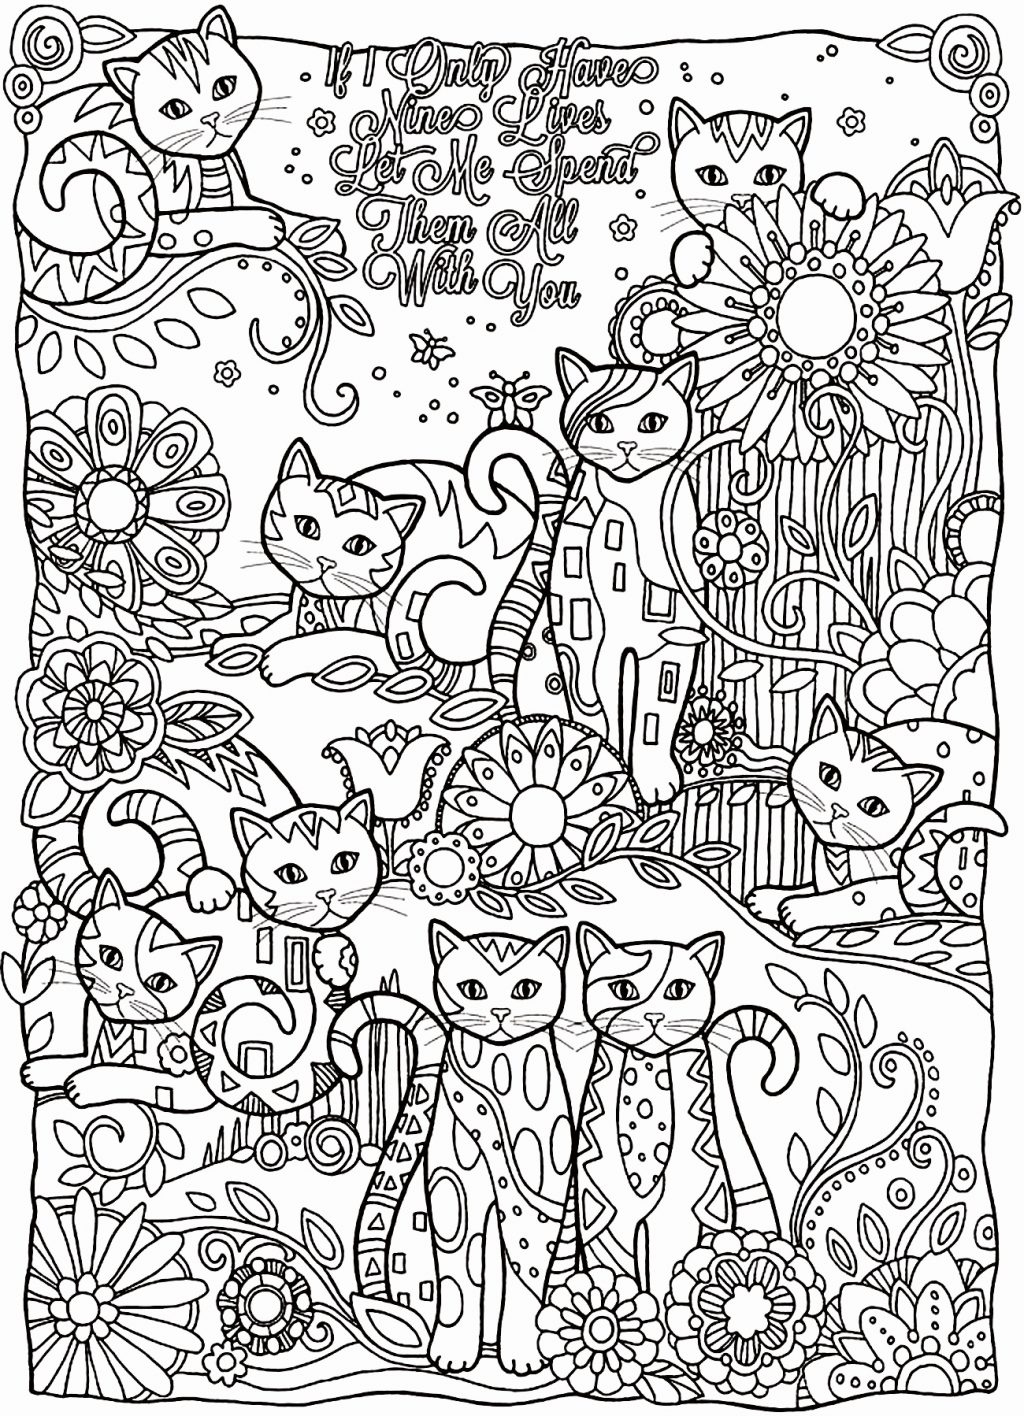 Coloring Pages ~ Coloring Pages Freeble Book Extraordinary Adult - Free Printable Coloring Pages For Adults Pdf